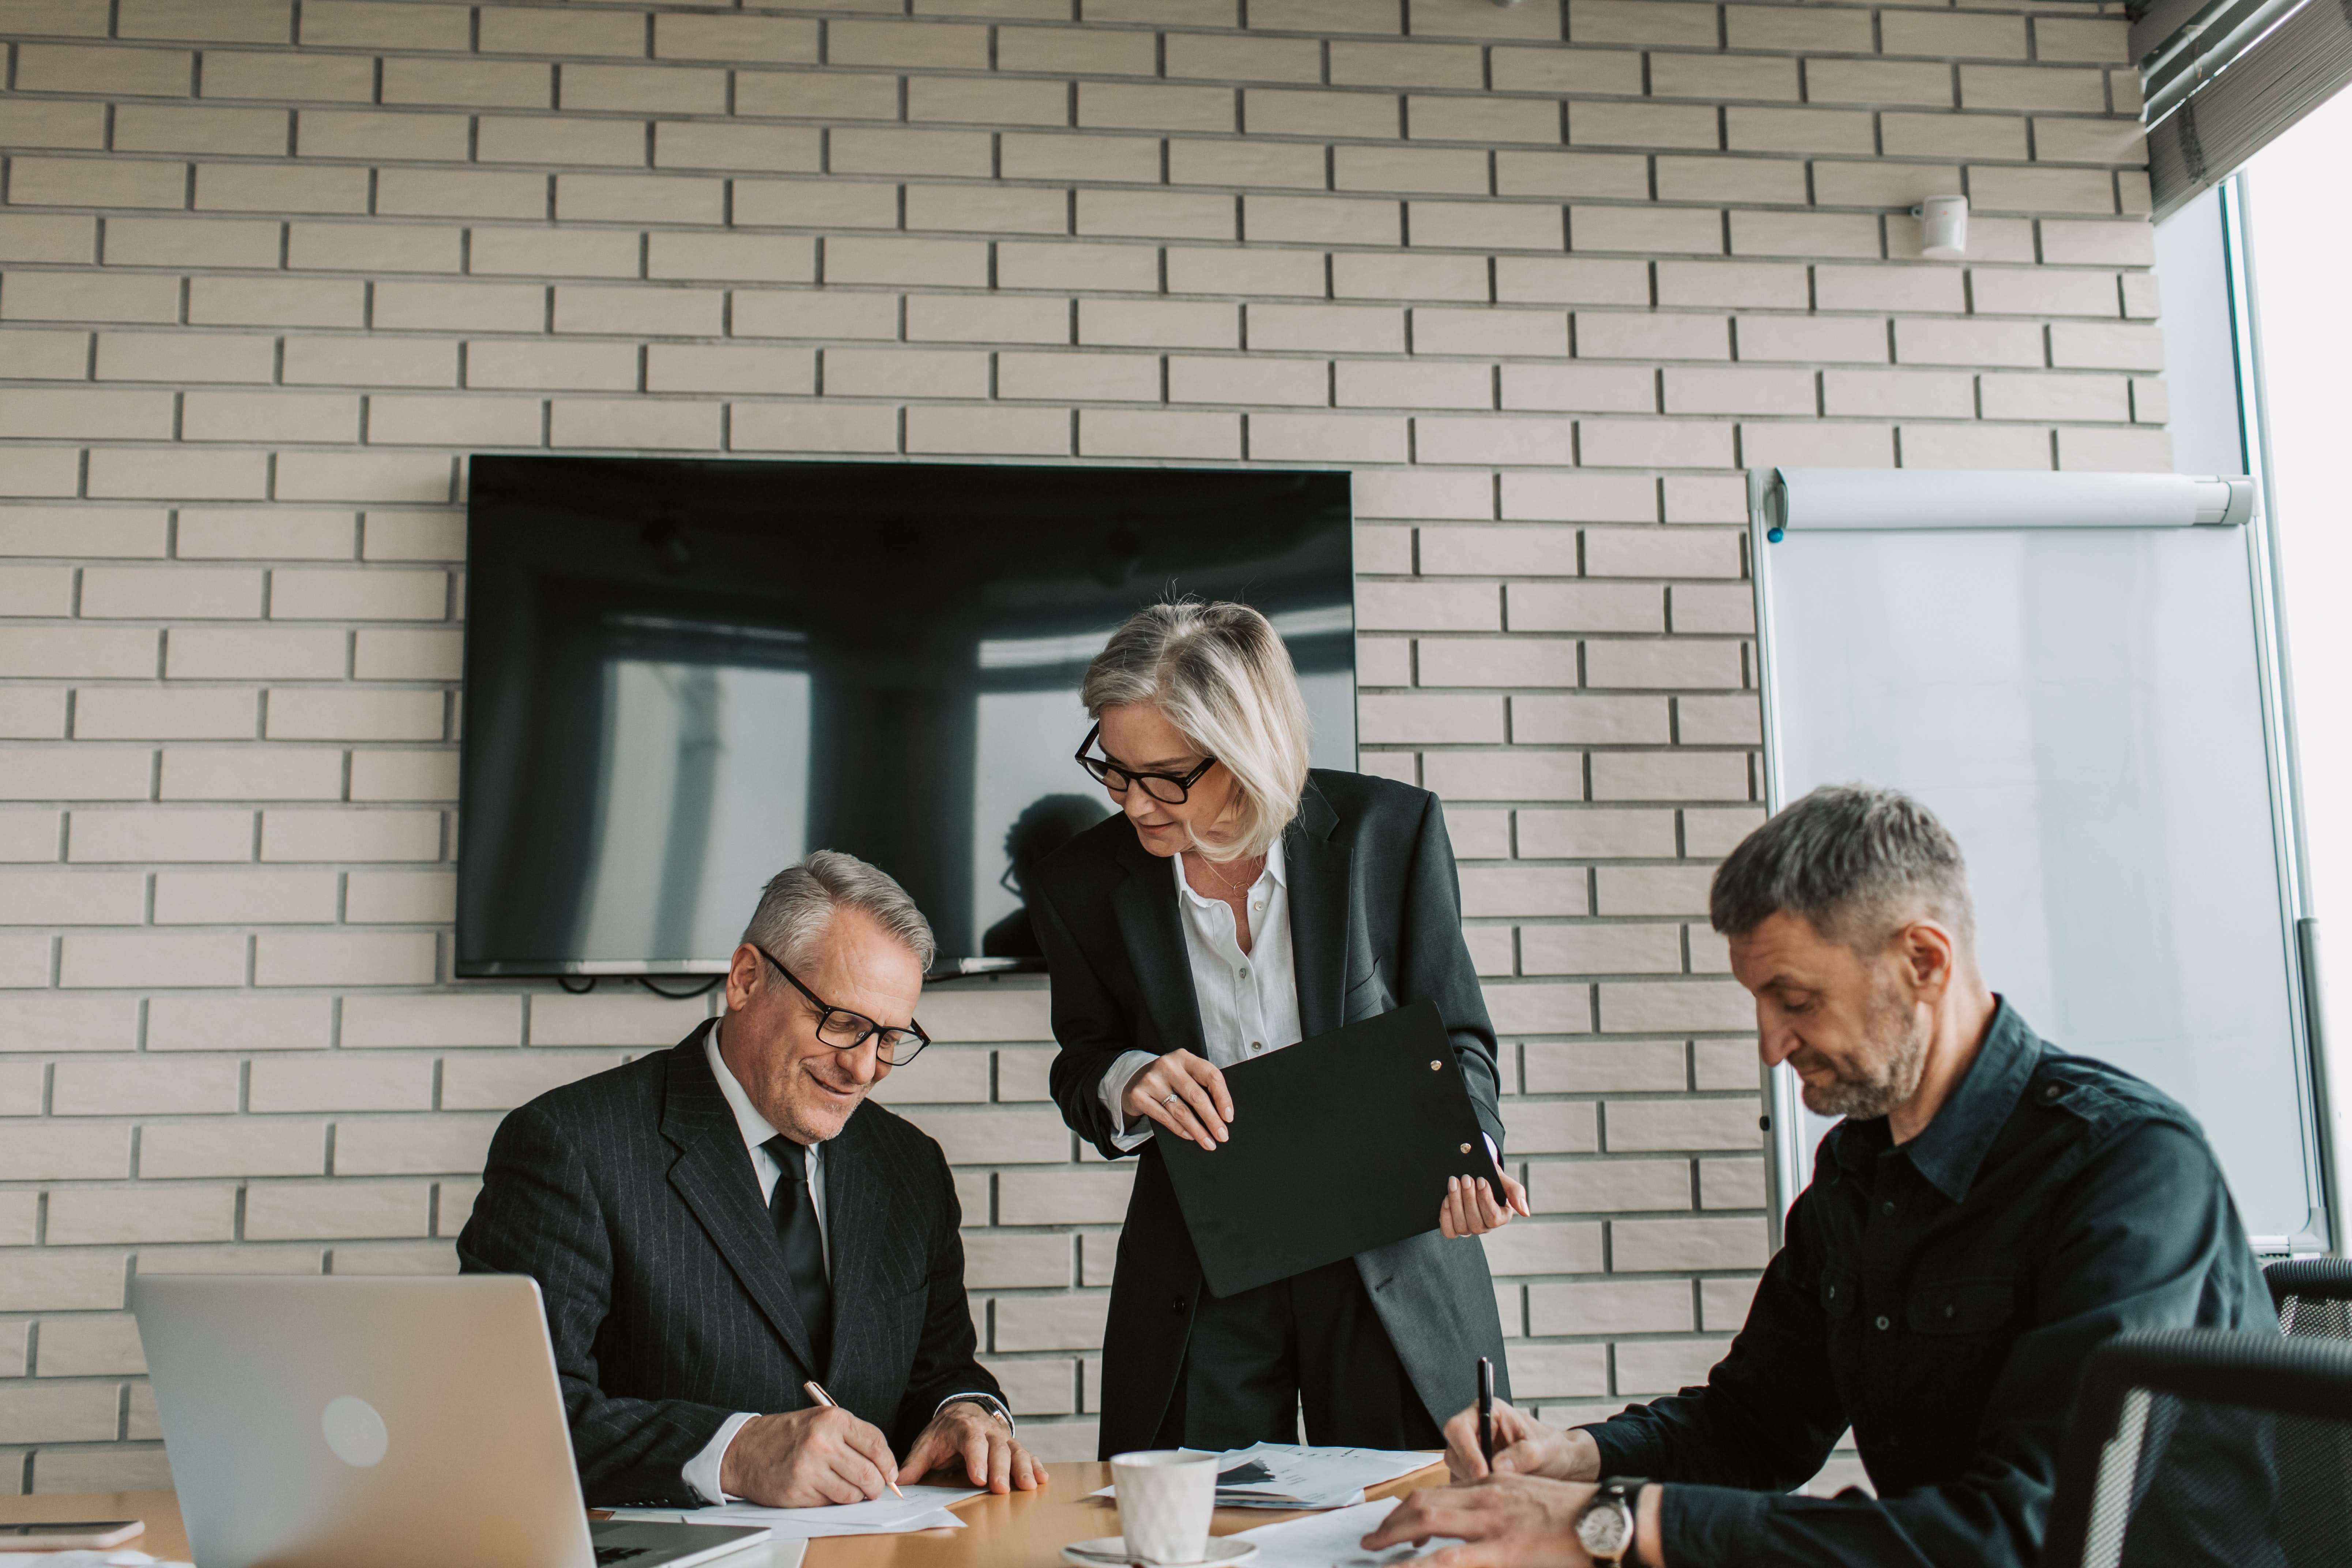 Finding the right business partner for your new law firm